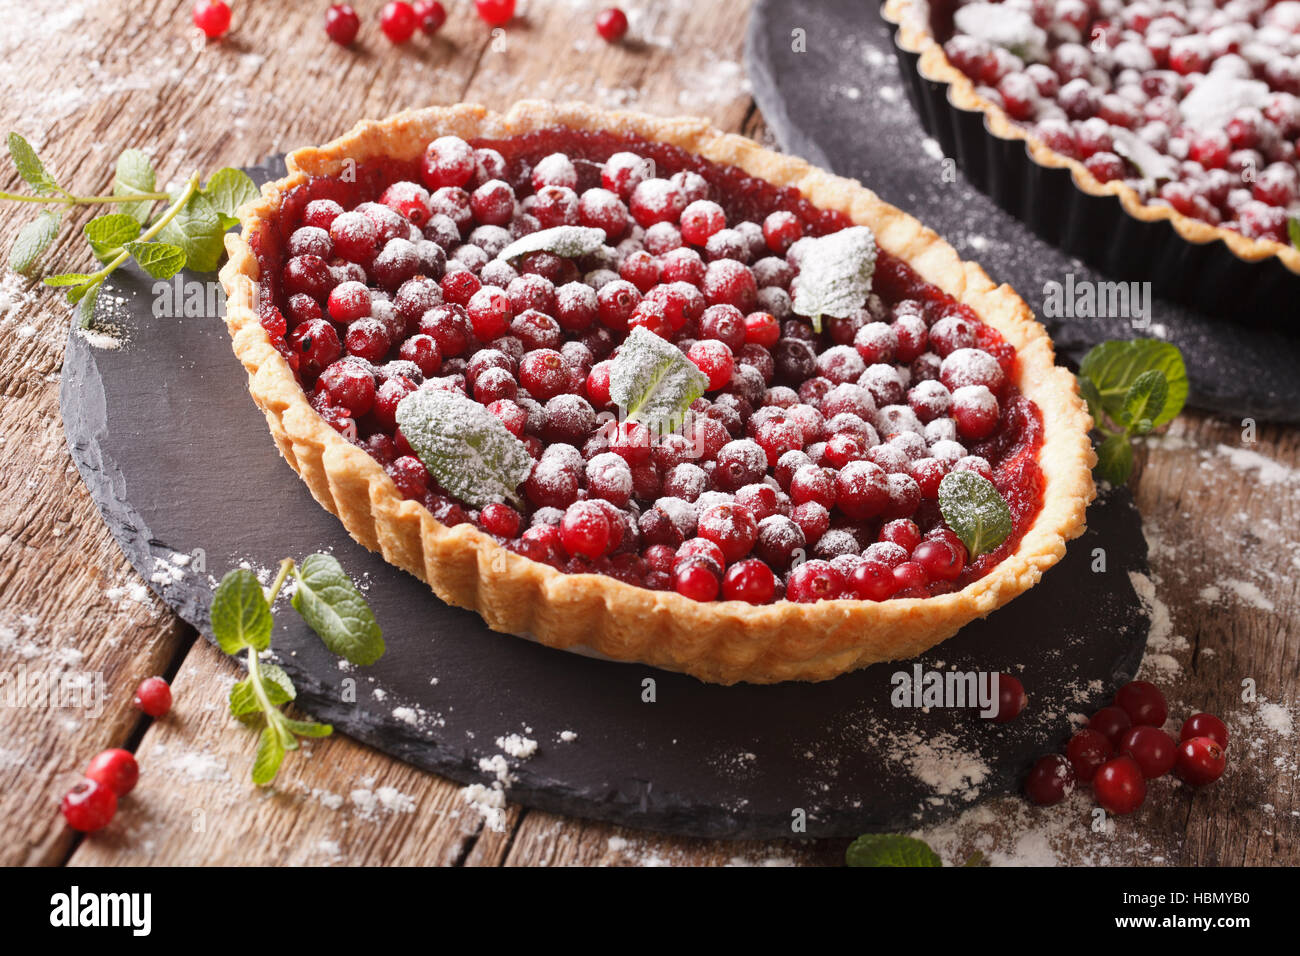 cranberry tart with jam, powdered sugar and mint close-up on the table. Horizontal - Stock Image